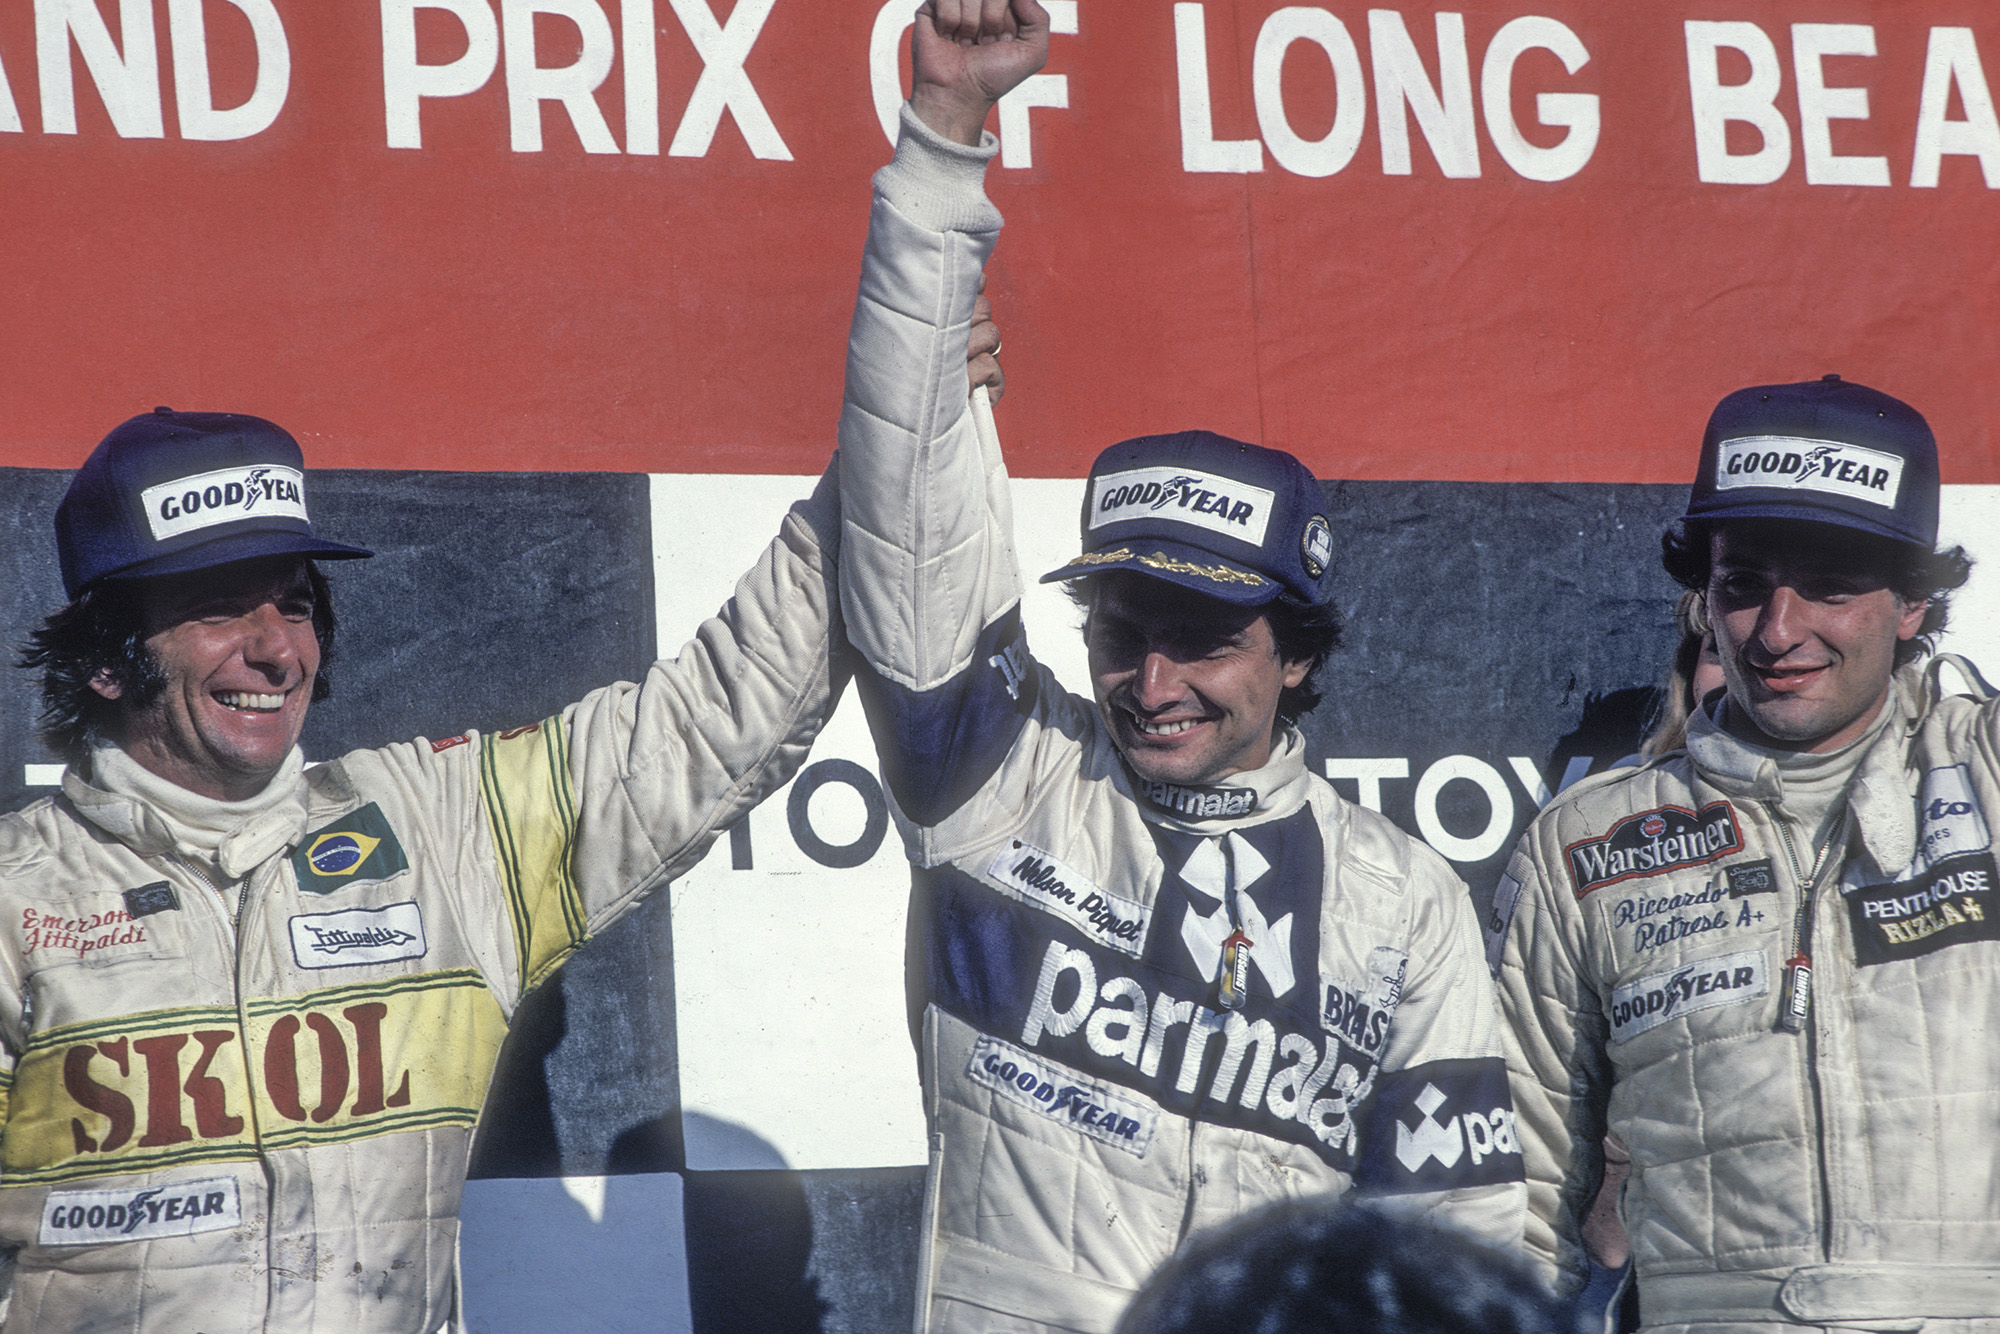 Nelson Piquet on the podium at Long Beach after winning his first F1 Grand Prix